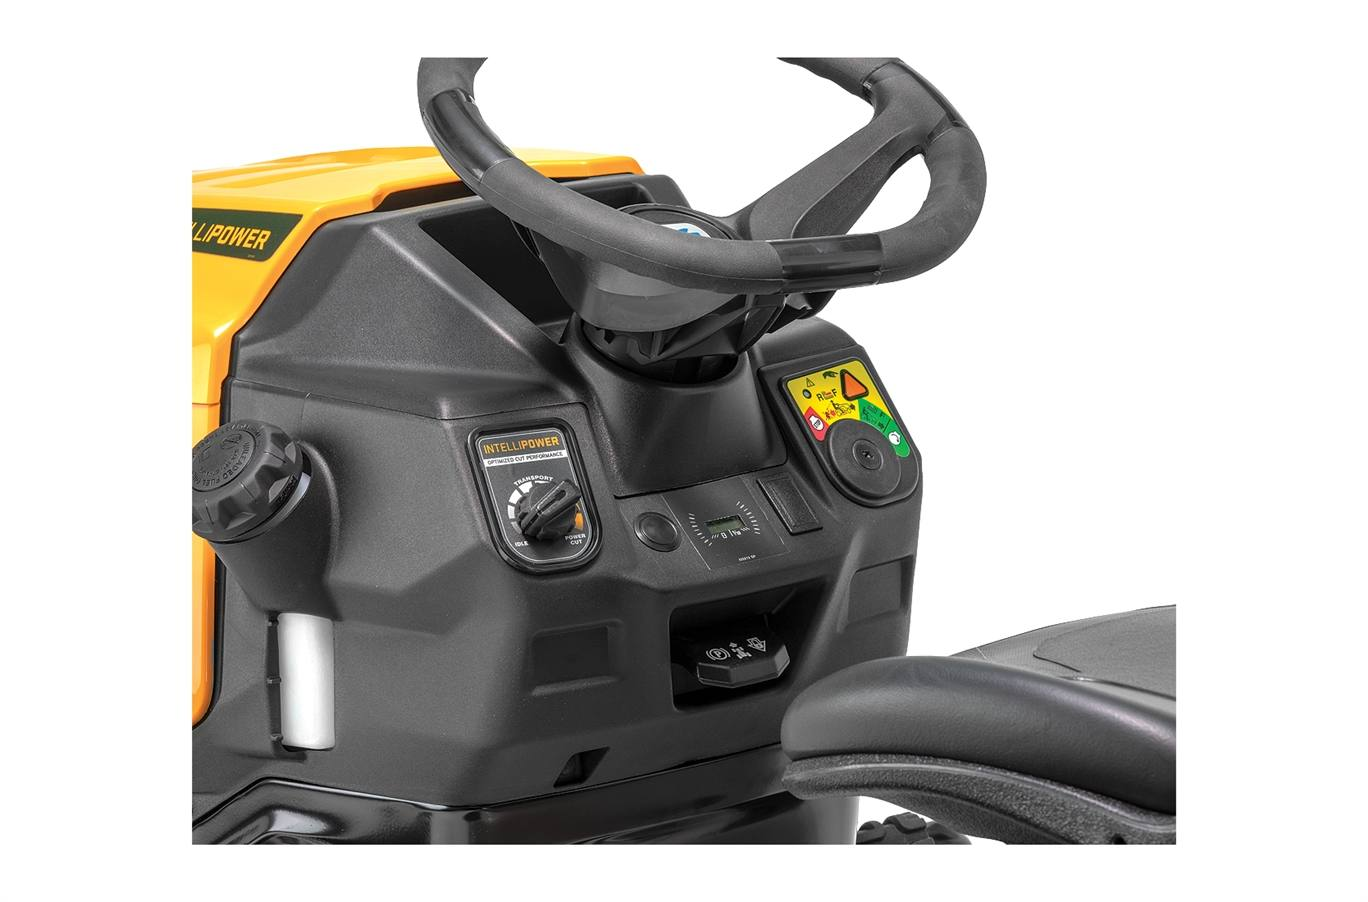 2019 Cub Cadet XT1 LT46 with IntelliPower